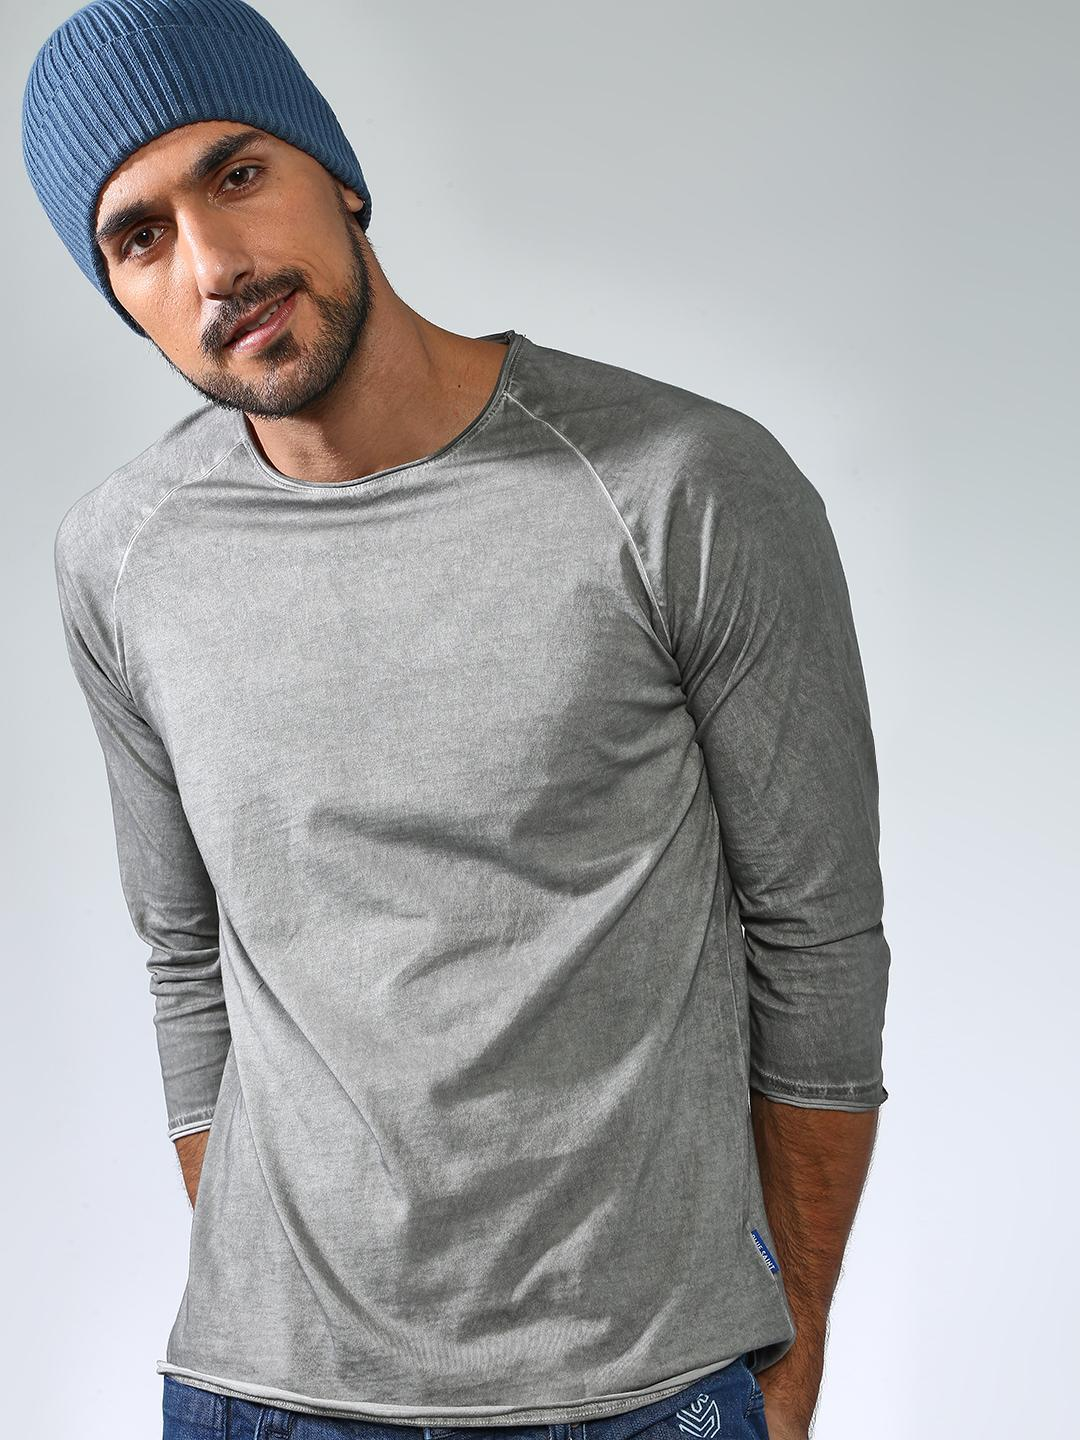 Blue Saint Grey Casual Round Neck Tshirts 1